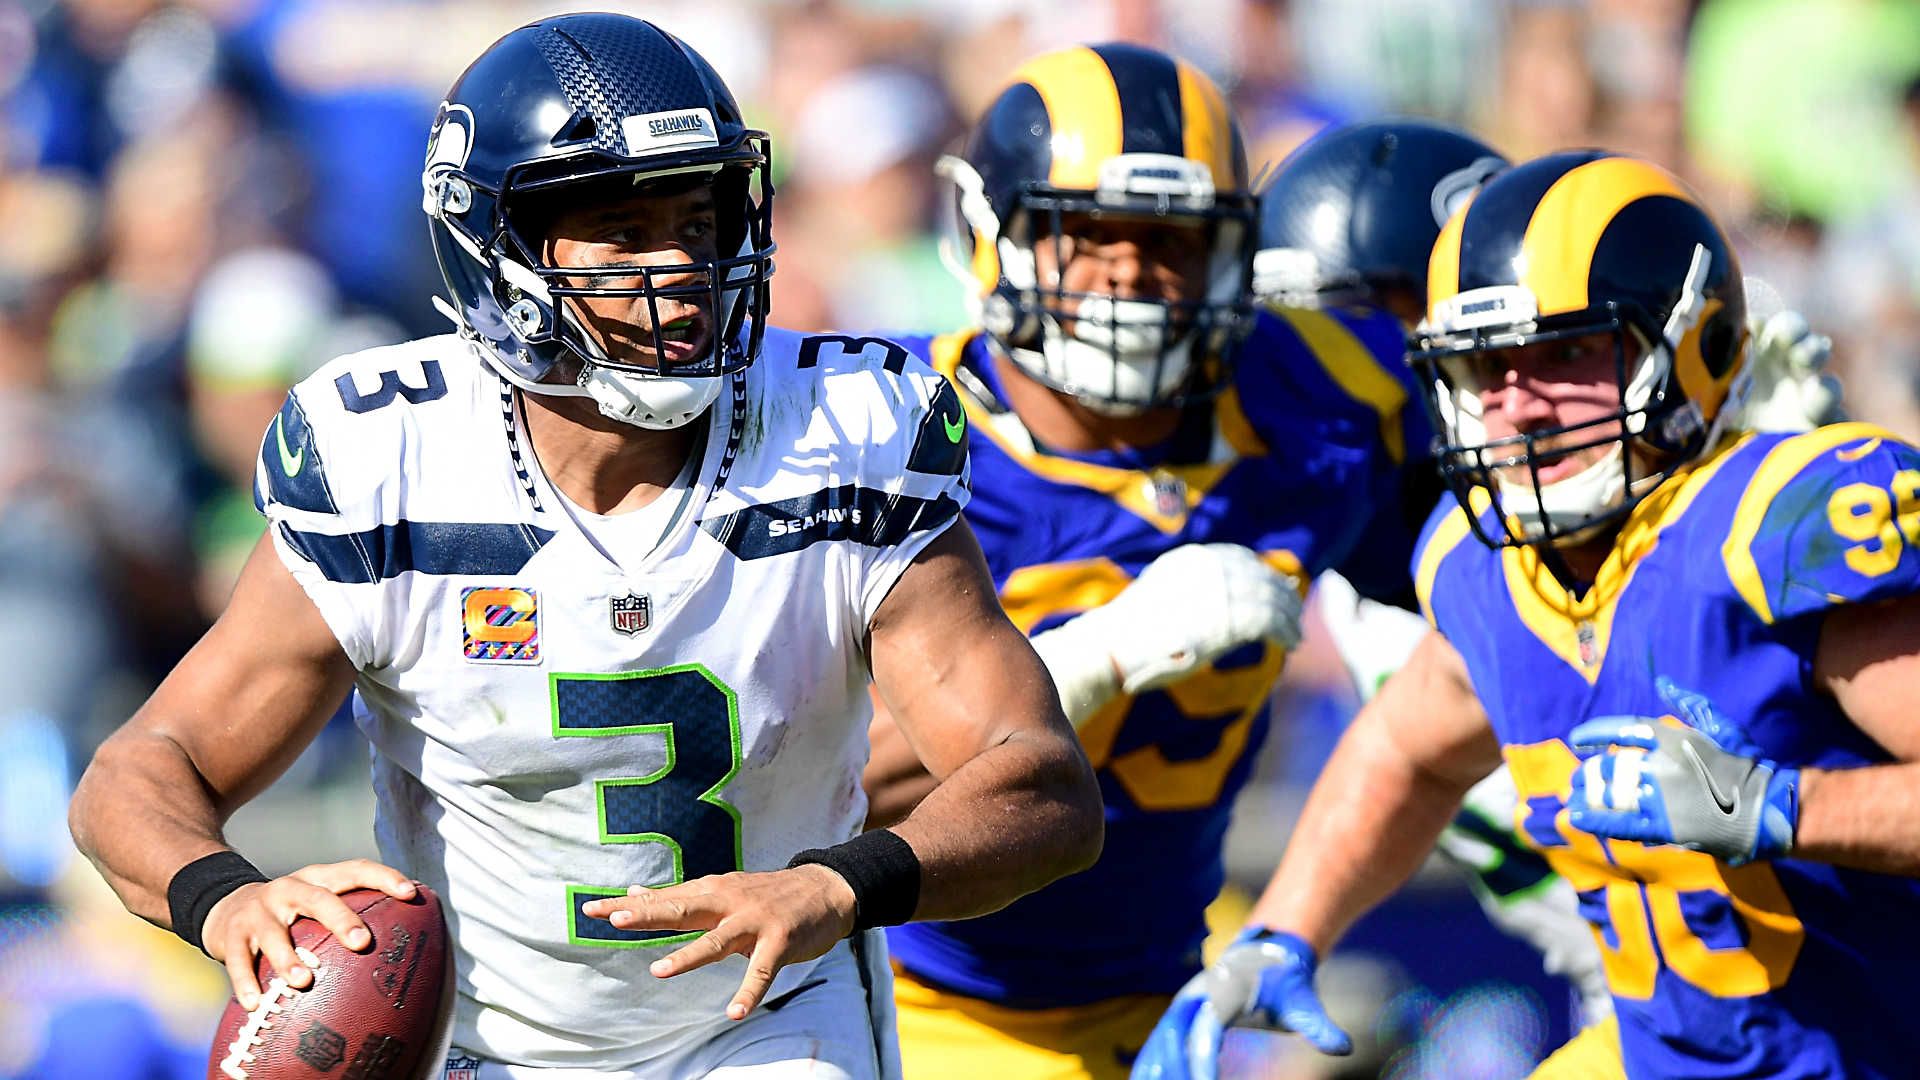 NFL Week 14 odds, predictions to make playoffs on road to Super Bowl 2018